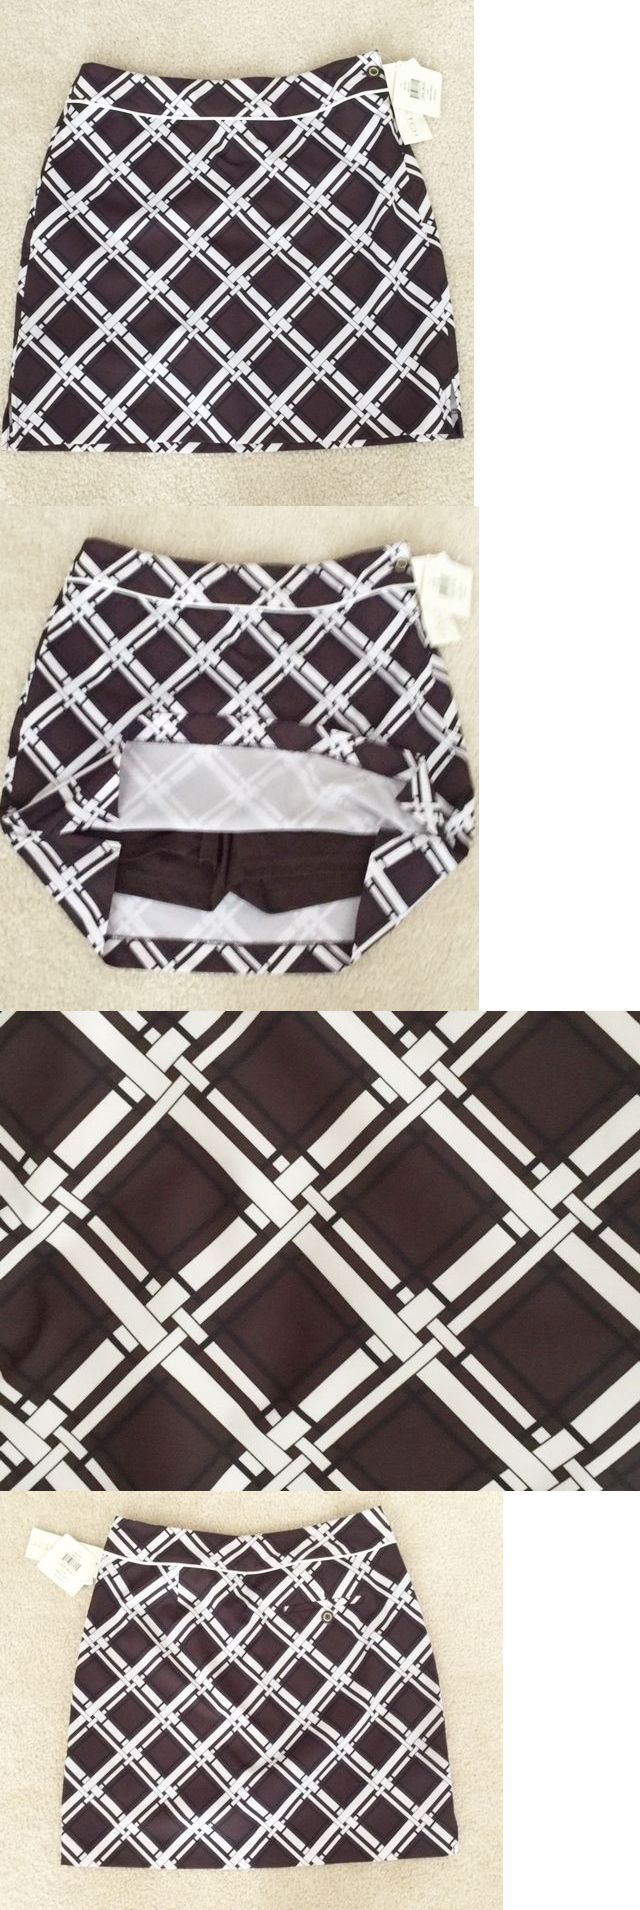 Skirts Skorts and Dresses 179003: Ep Pro Women S Golf Skort The Savory -> BUY IT NOW ONLY: $38 on eBay!